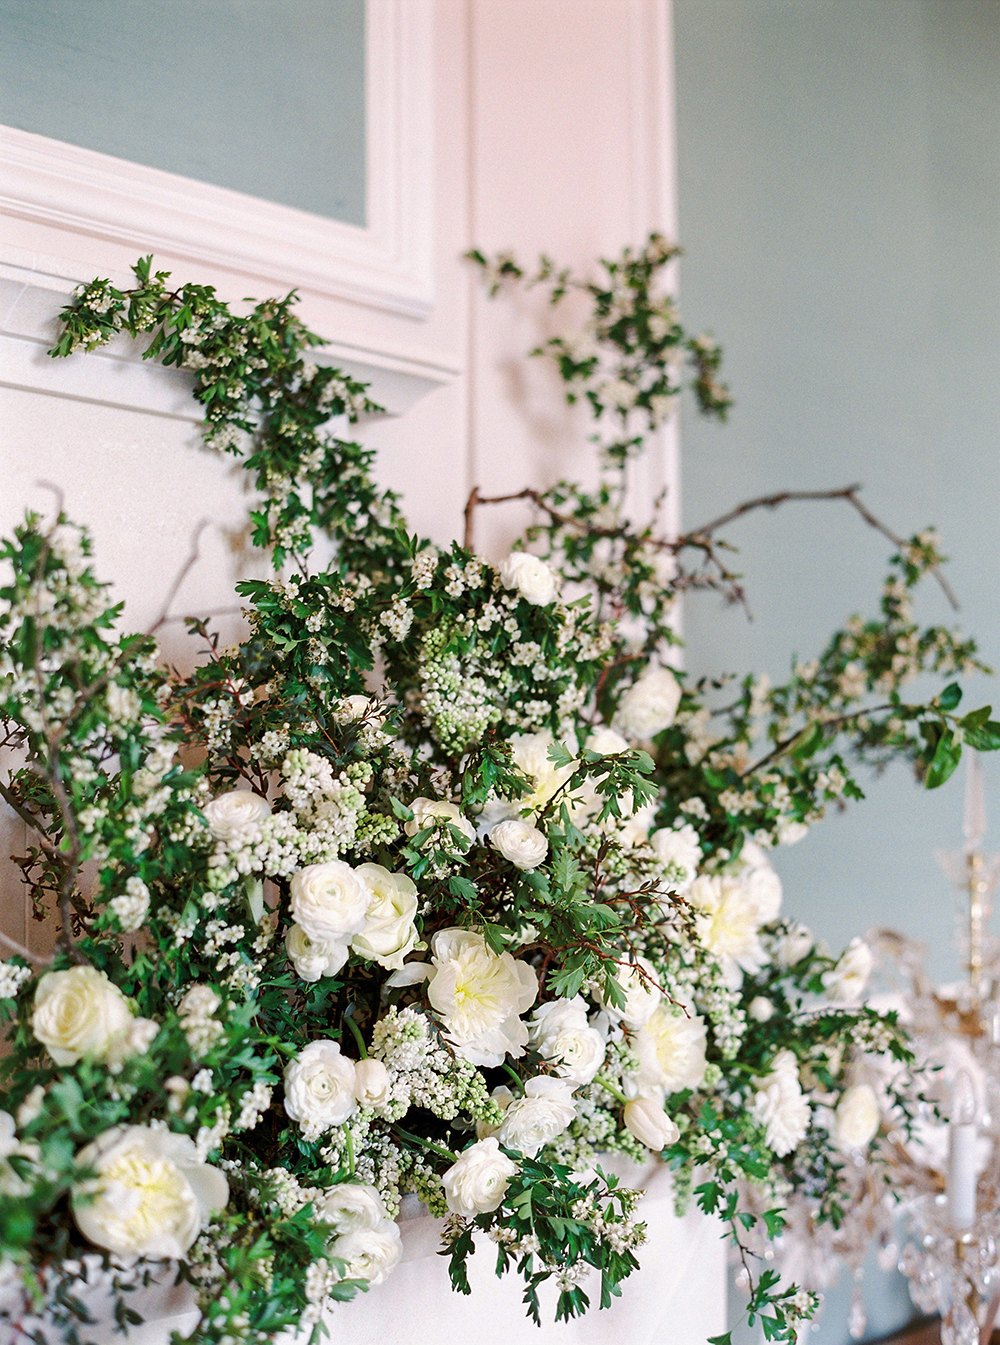 Stunning flowers from a wedding at chateau bouffemont